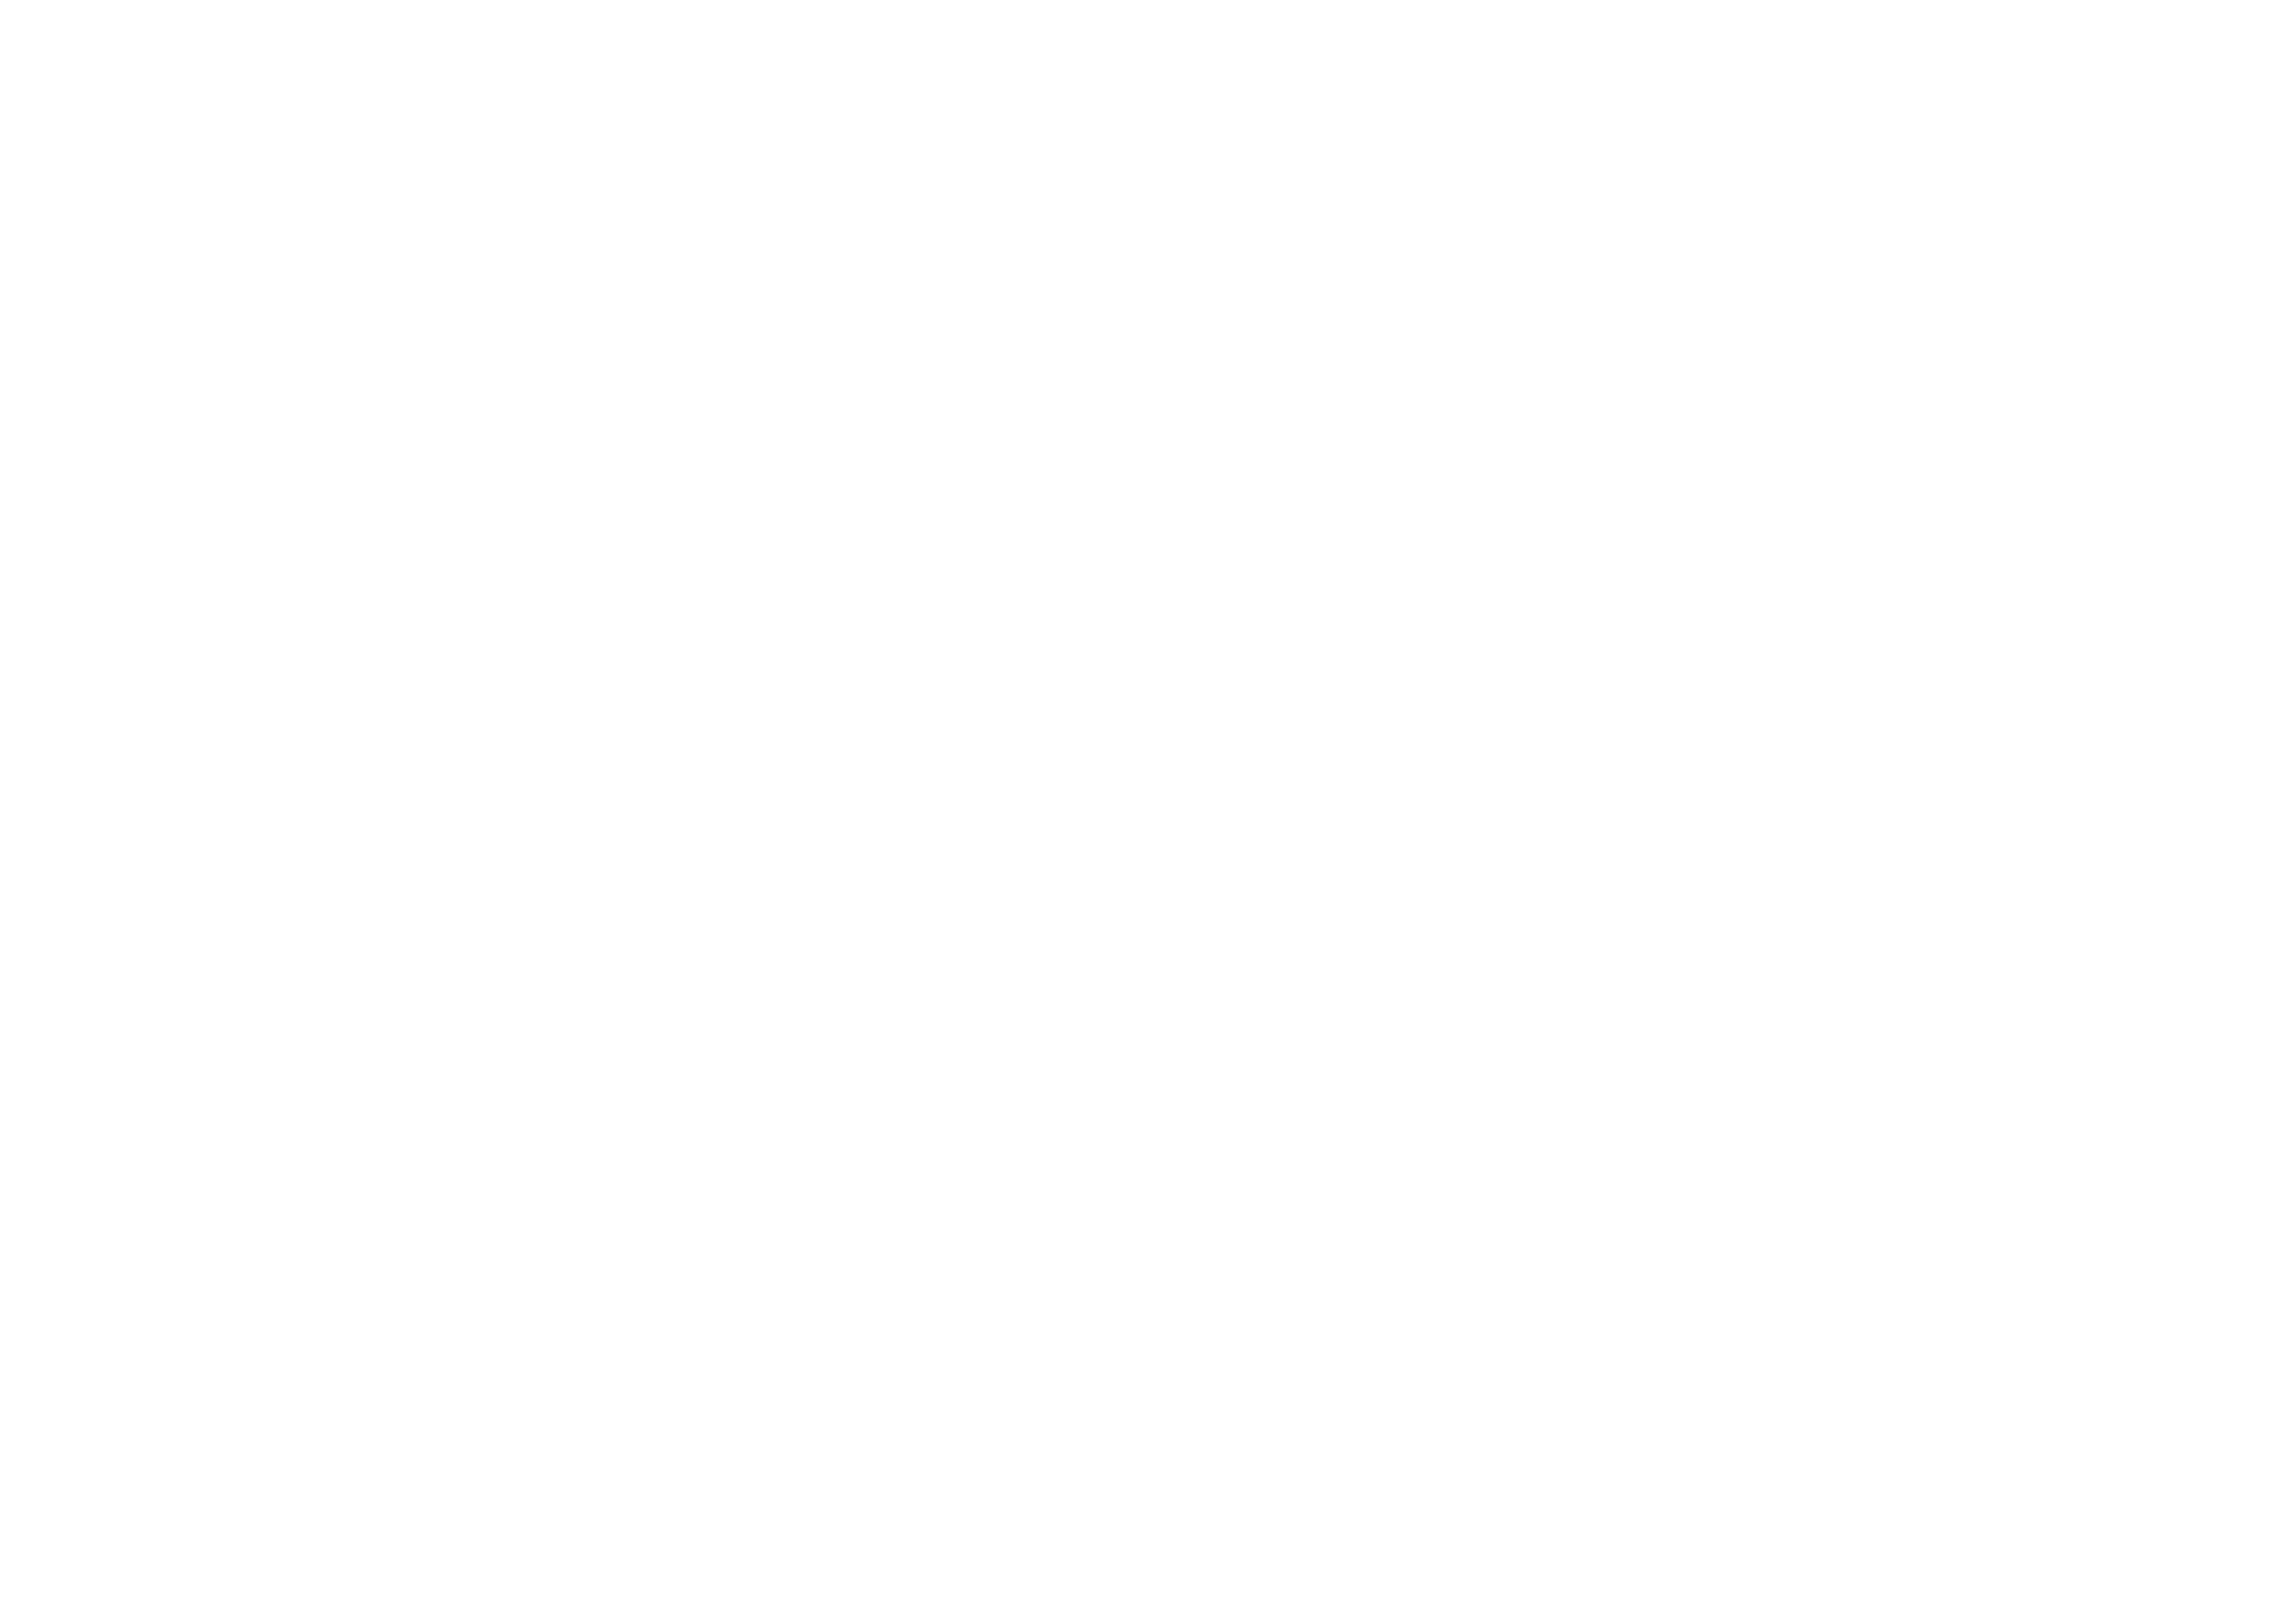 Hino - Carry it all